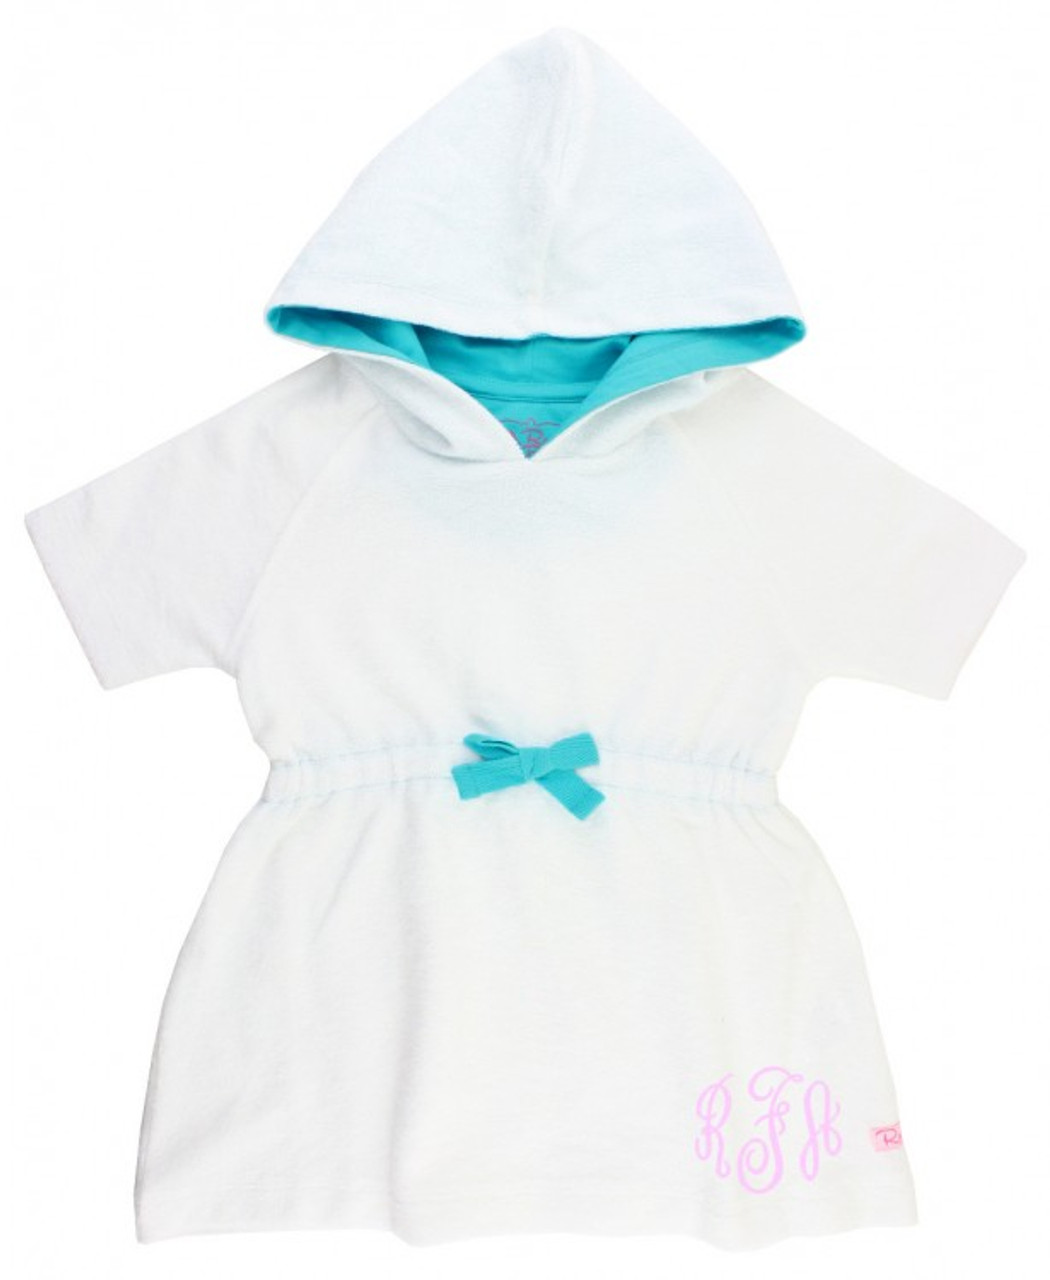 RuffleButts White Terry Cover-Up - Size 18-24 months